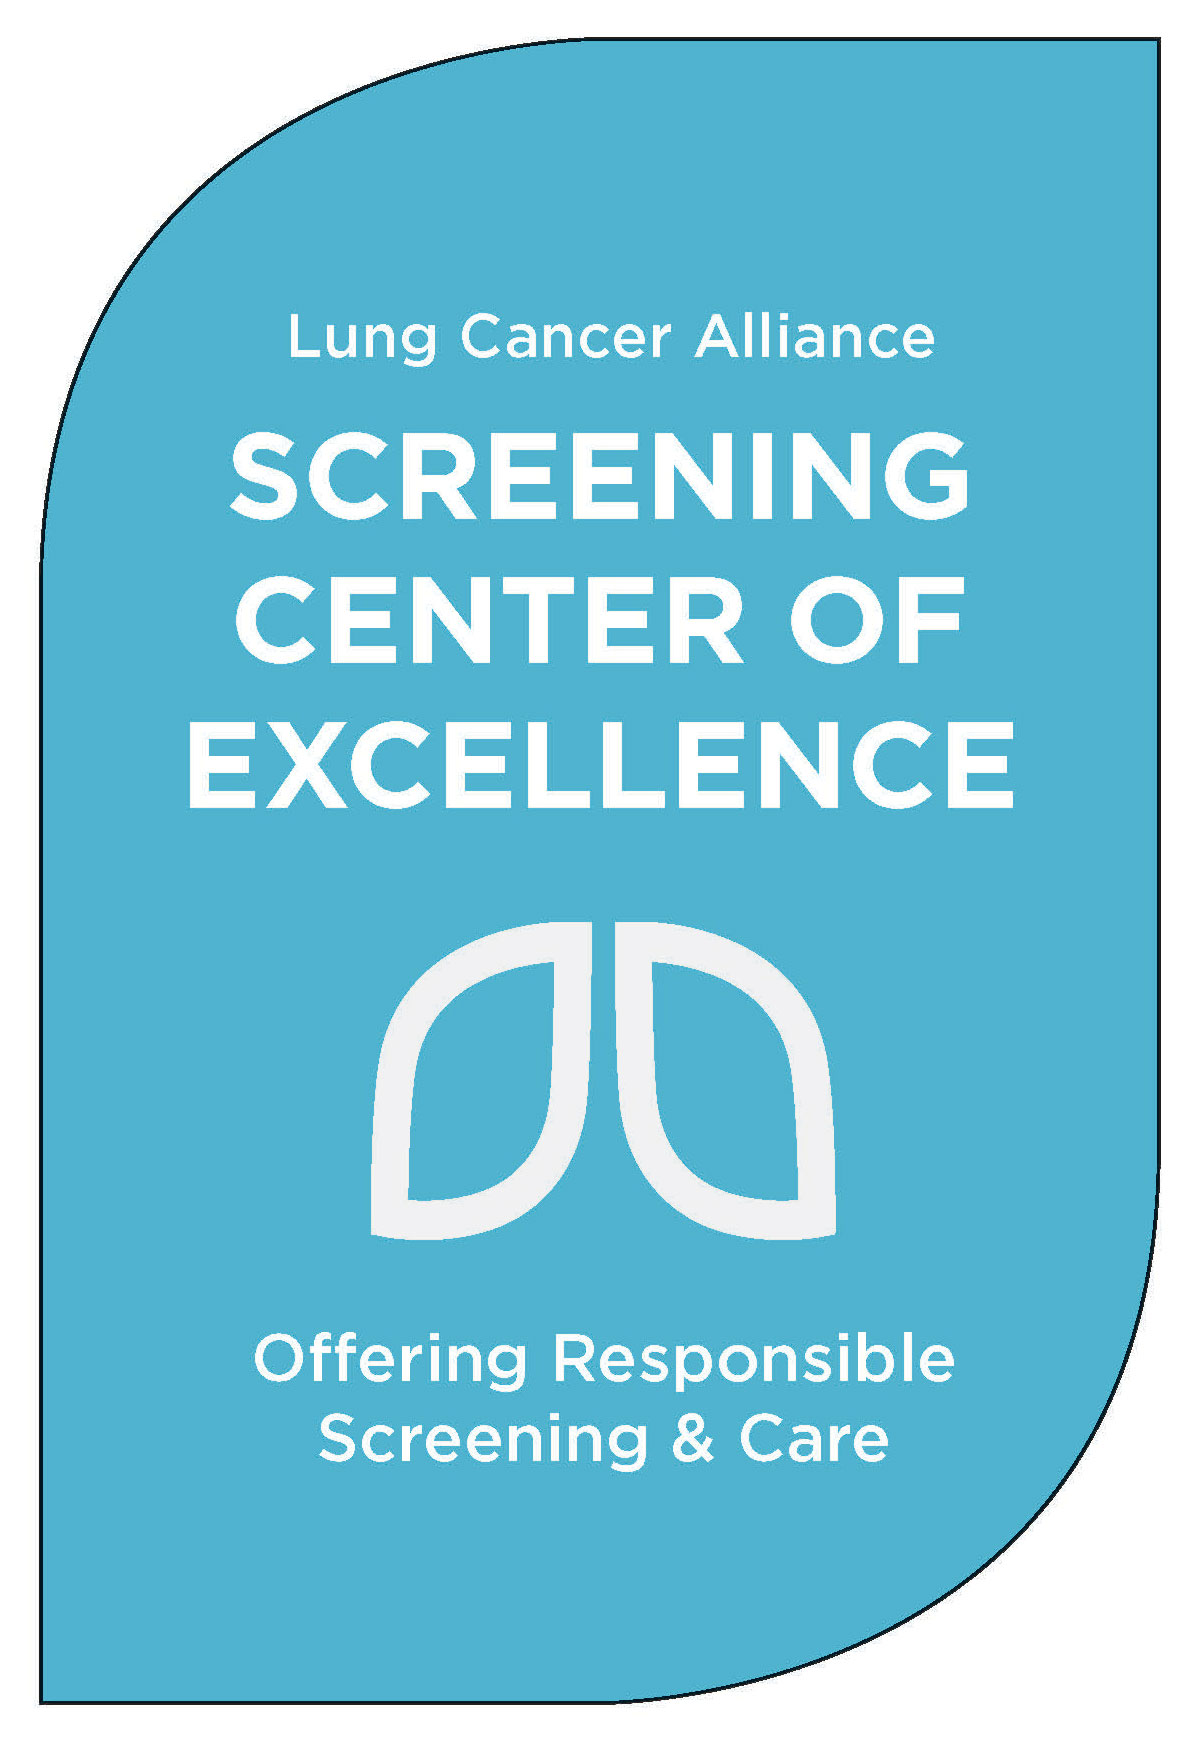 Screening Center of Excellence